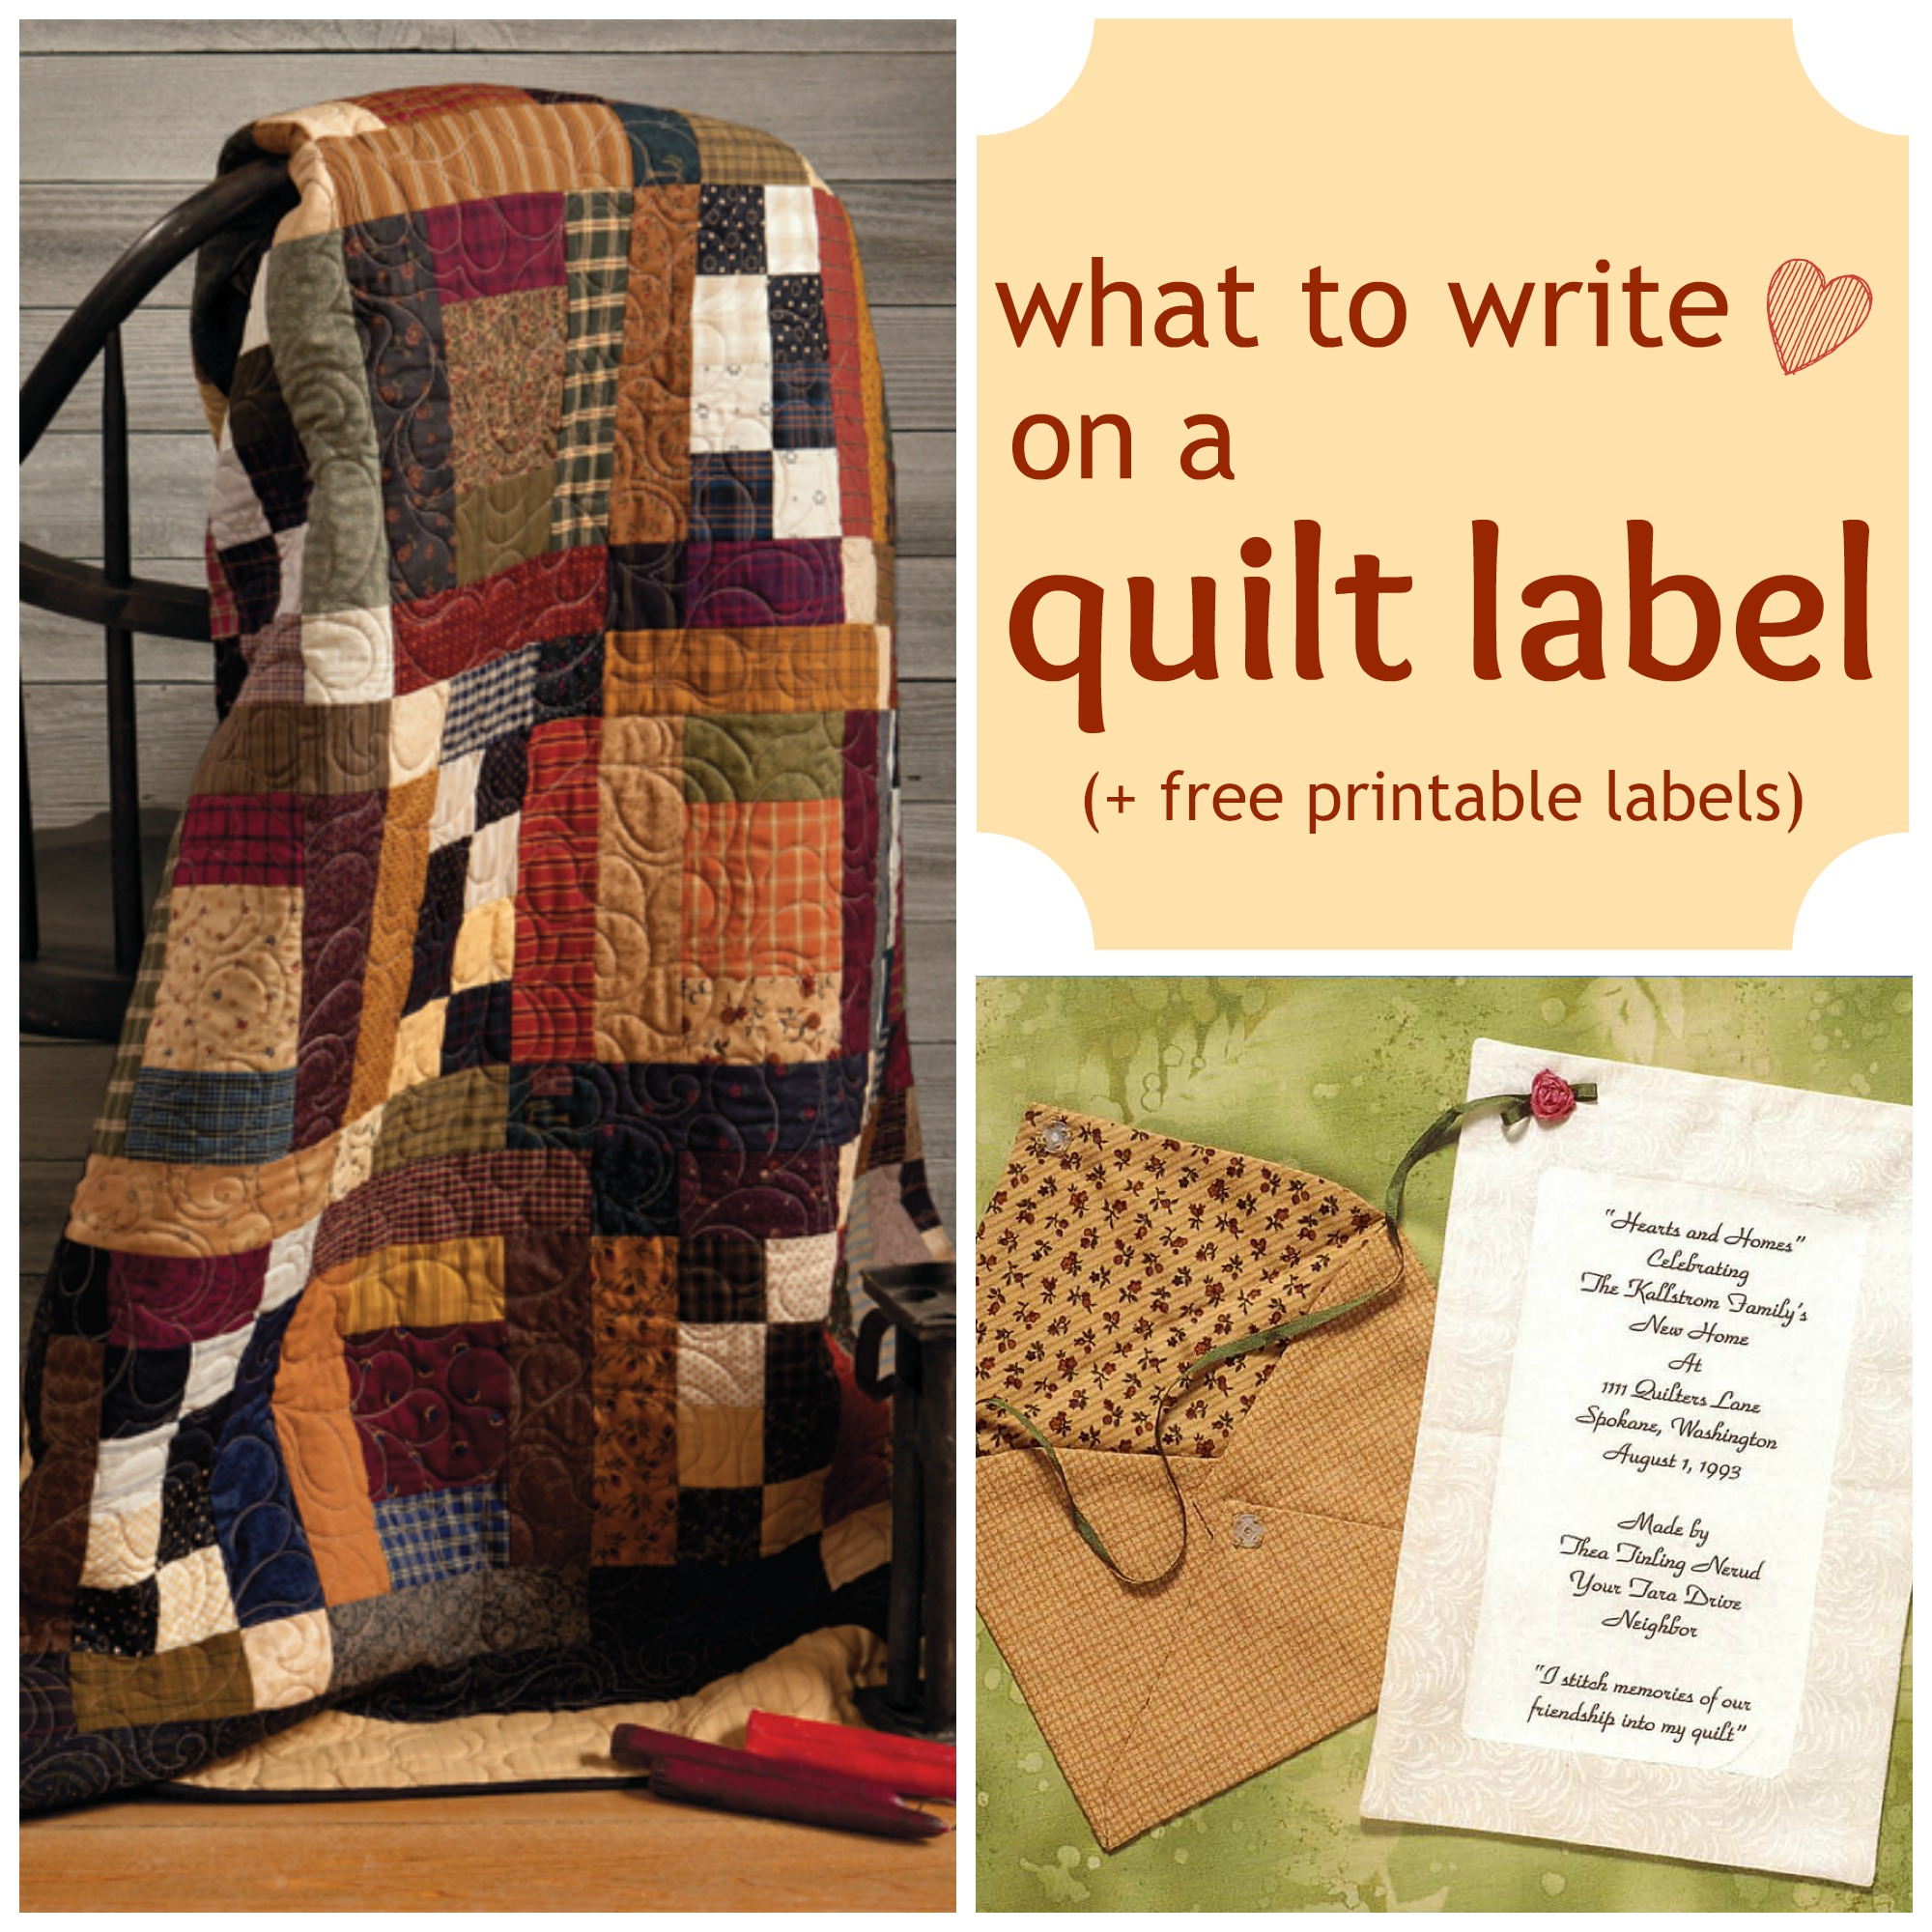 photograph regarding Printable Quilt Labels named what in the direction of create upon a quilt label - Sch This! The Martingale